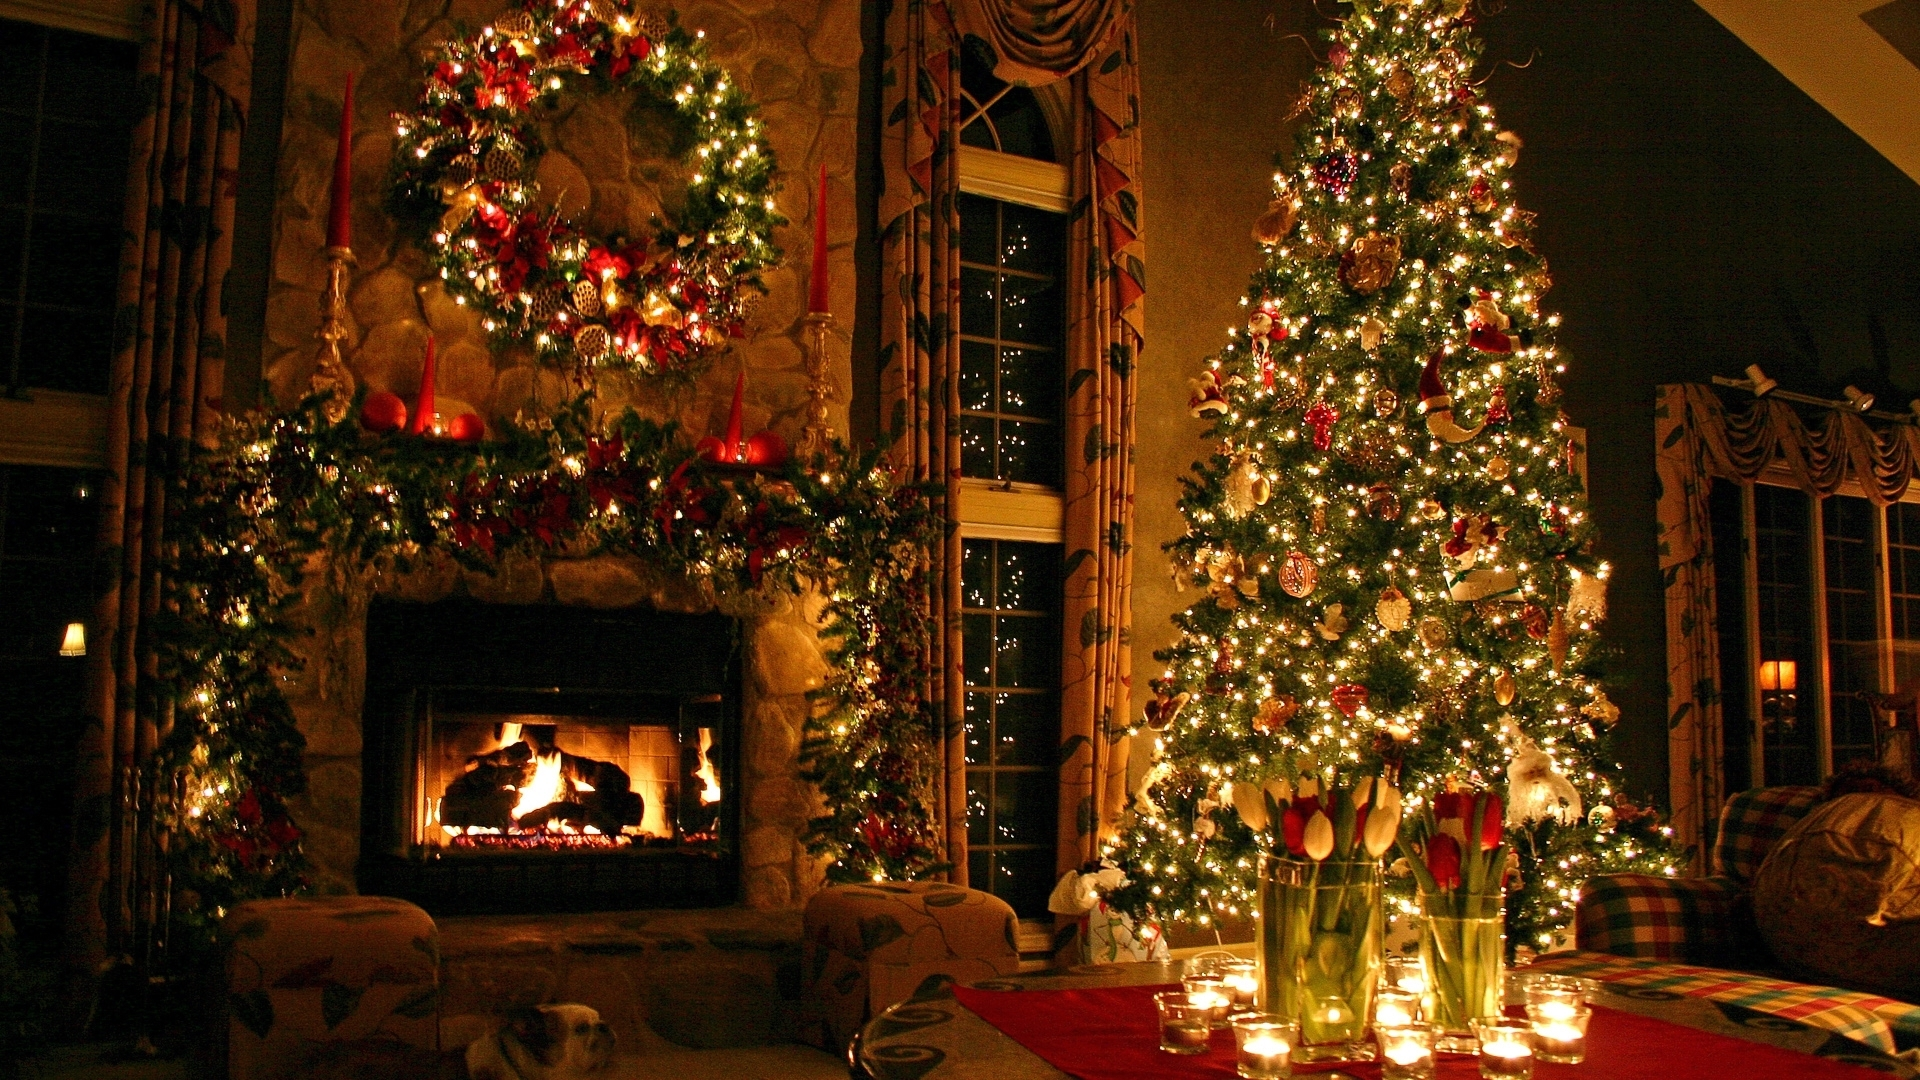 christmas wallpapers hd 1080p gallery (66+ images)